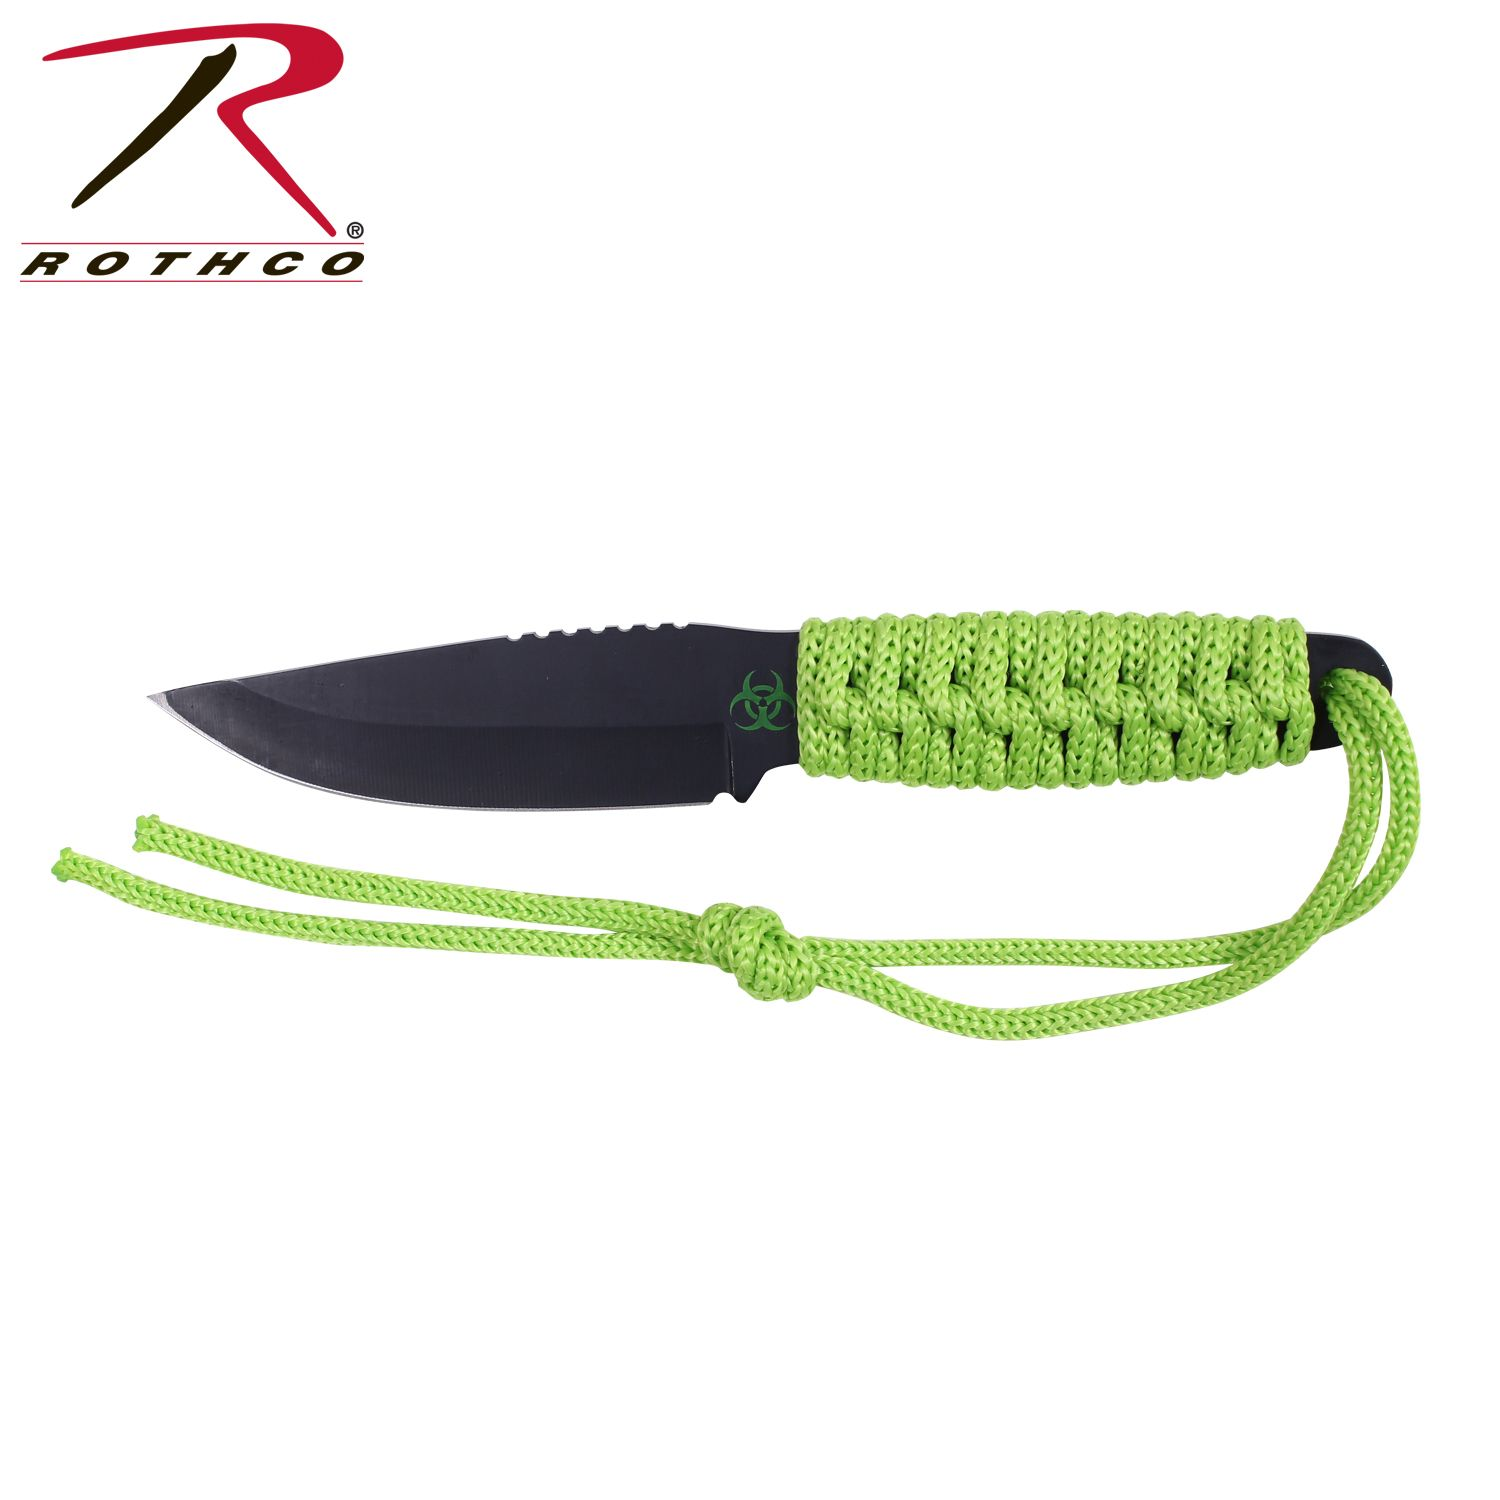 Rothco zombie paracord knife wfire starter zombies survival